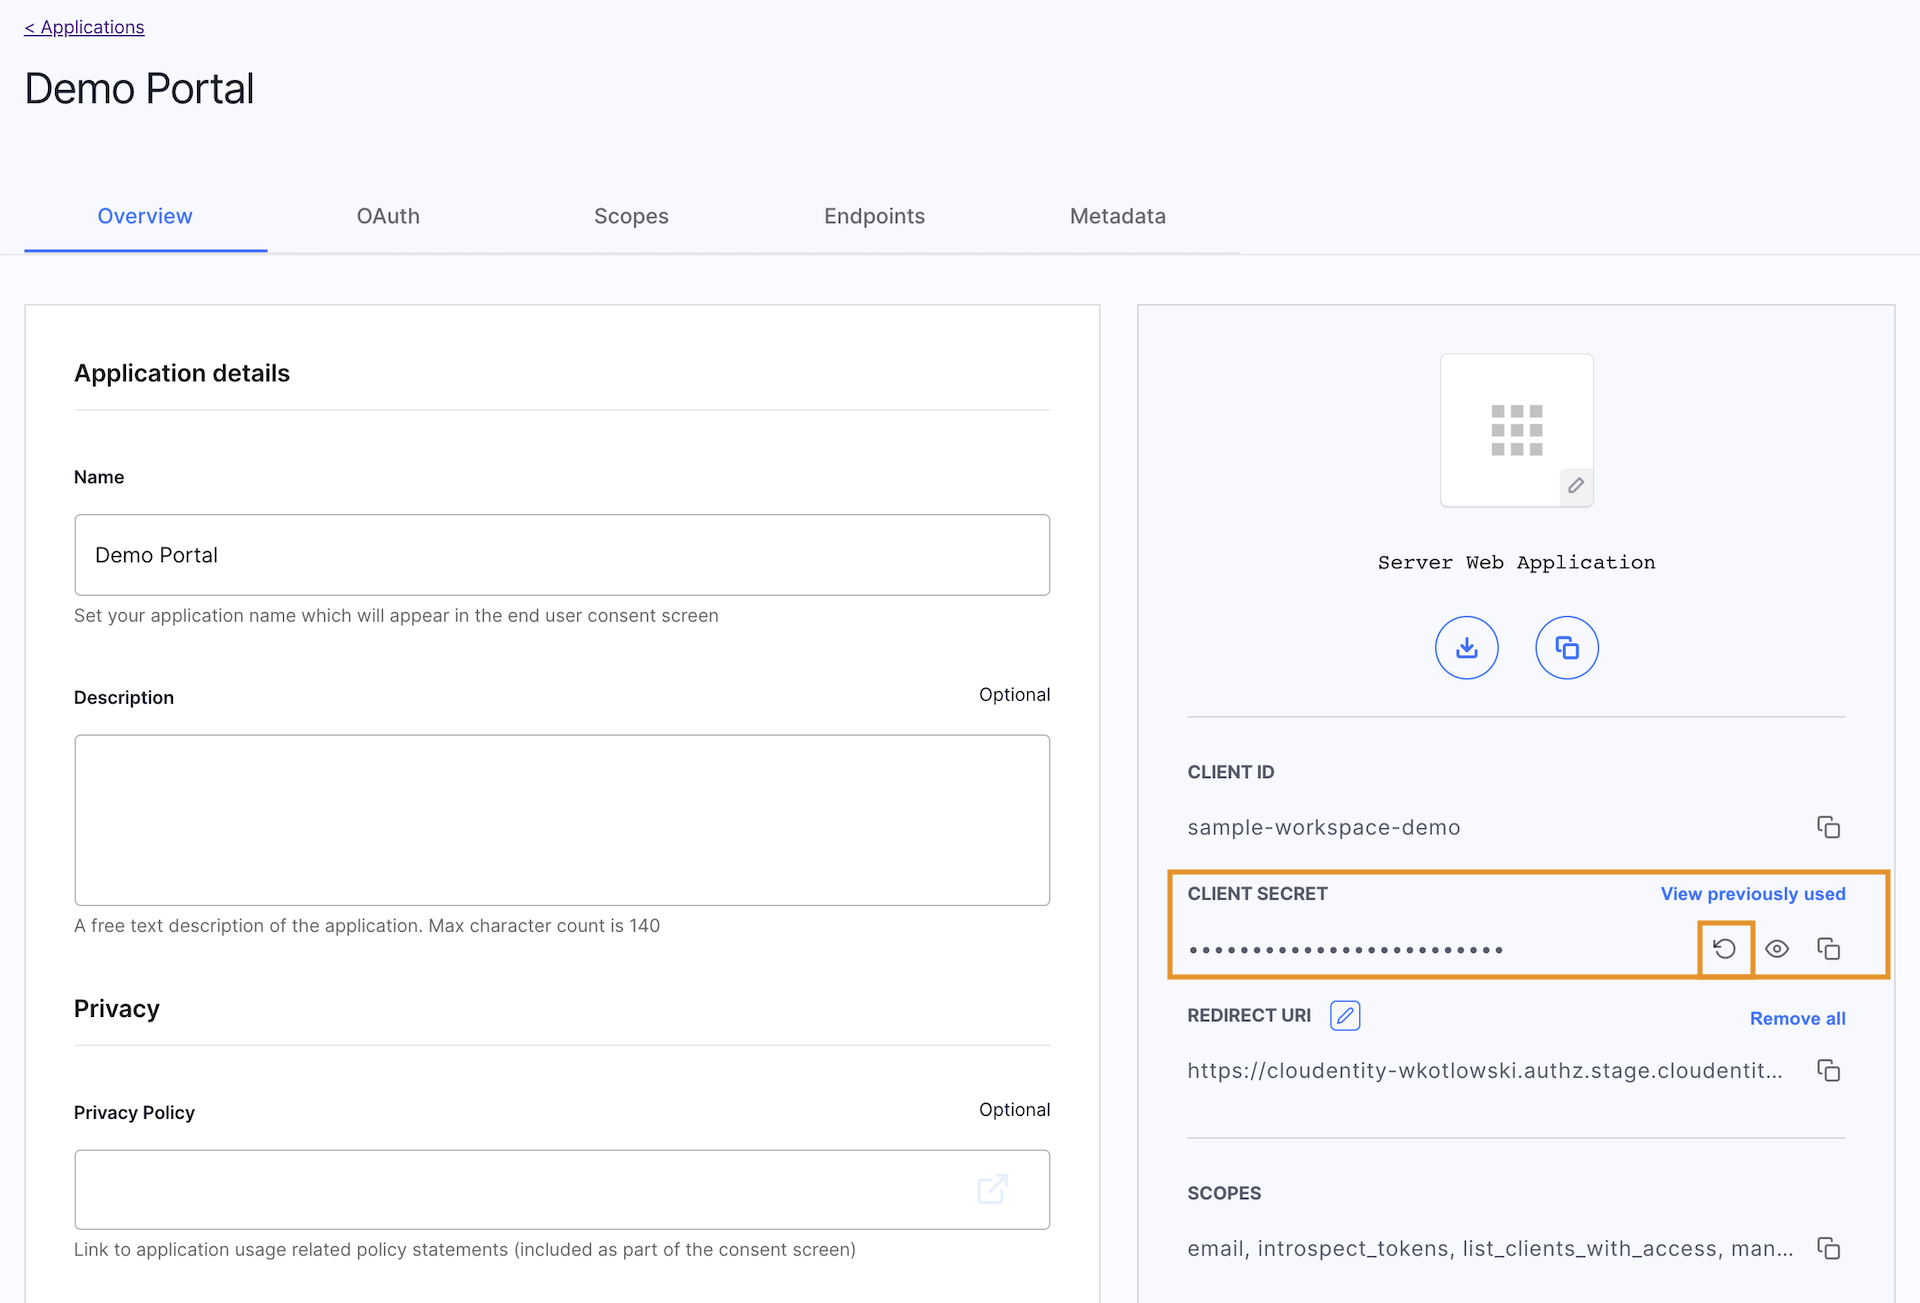 Rotating client secrets in Admin Panel